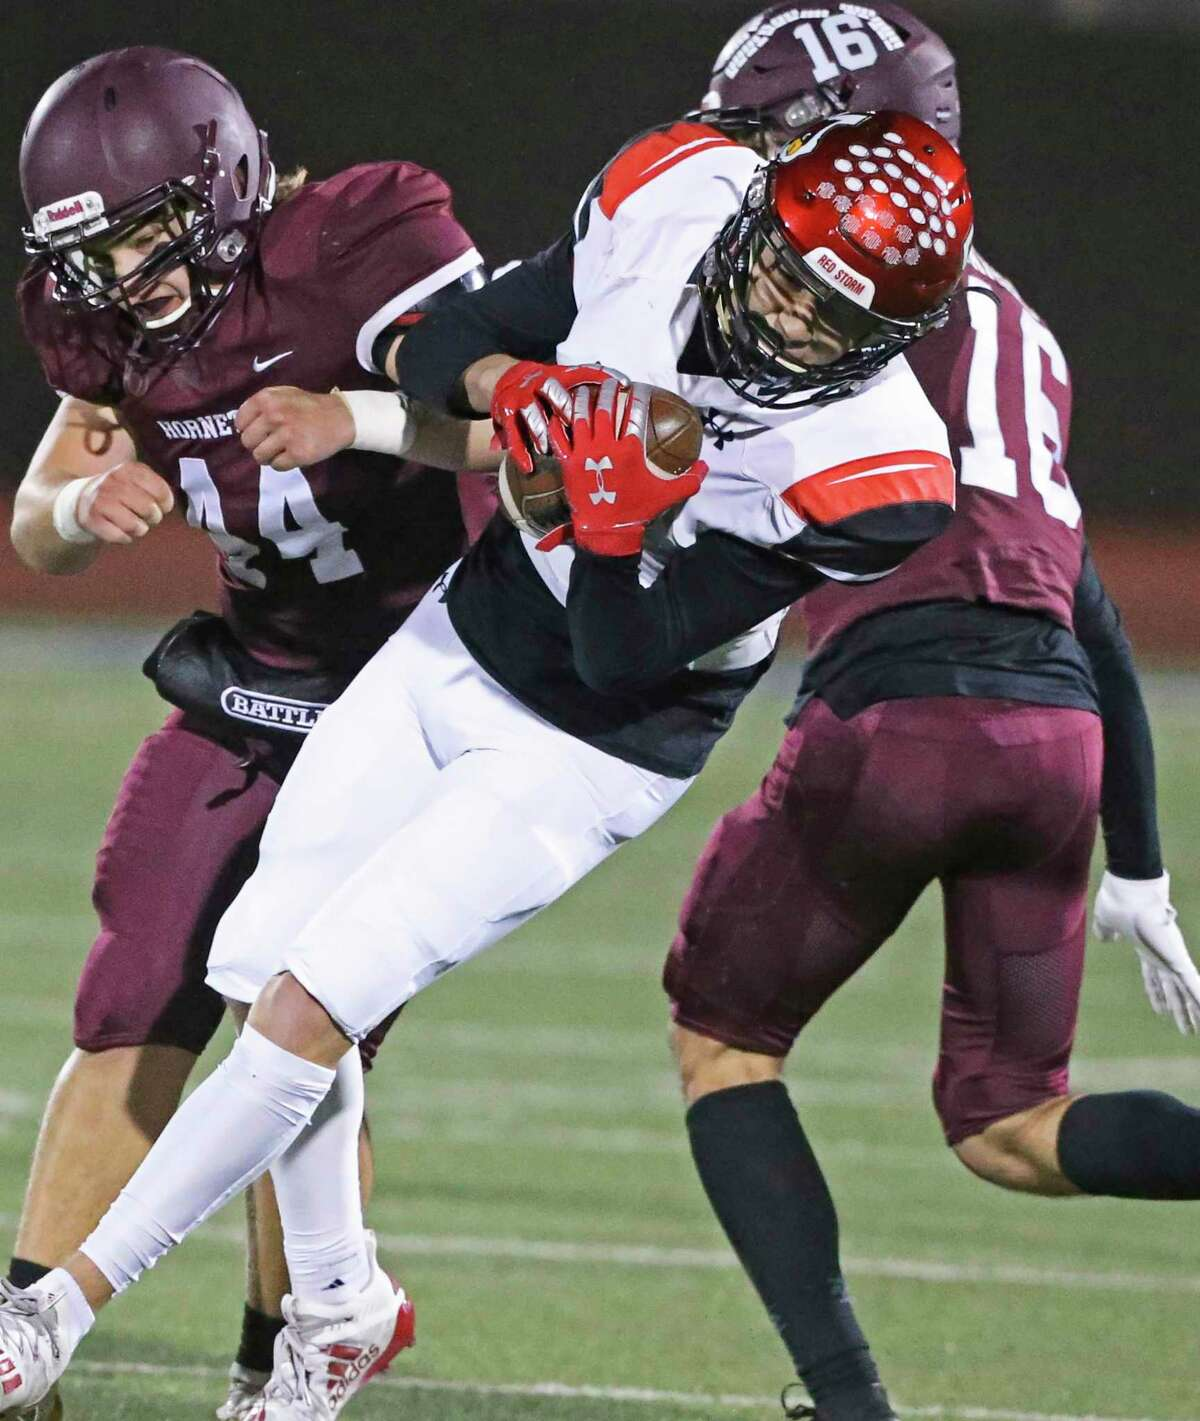 Cardinal Senobio Ortiz gets away with a catch between two clashing defenders when Southside faces Flour Bluff in the high school playoffs at Alamo Stadium on December 17, 2020.